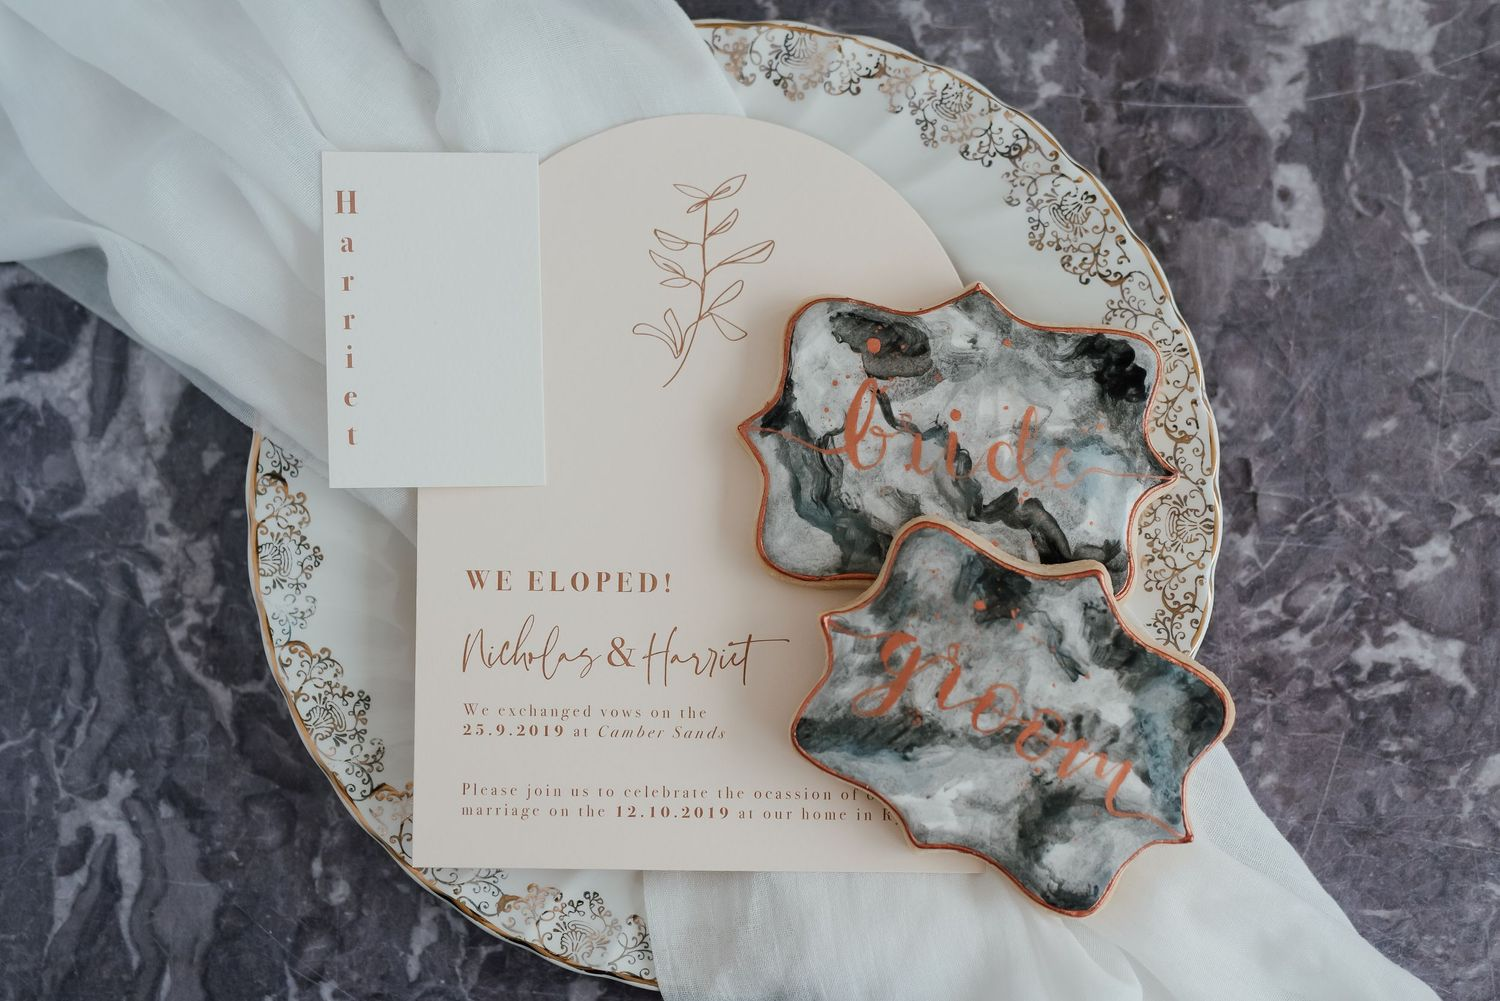 Marble effect iced wedding biscuits and cream wedding stationery